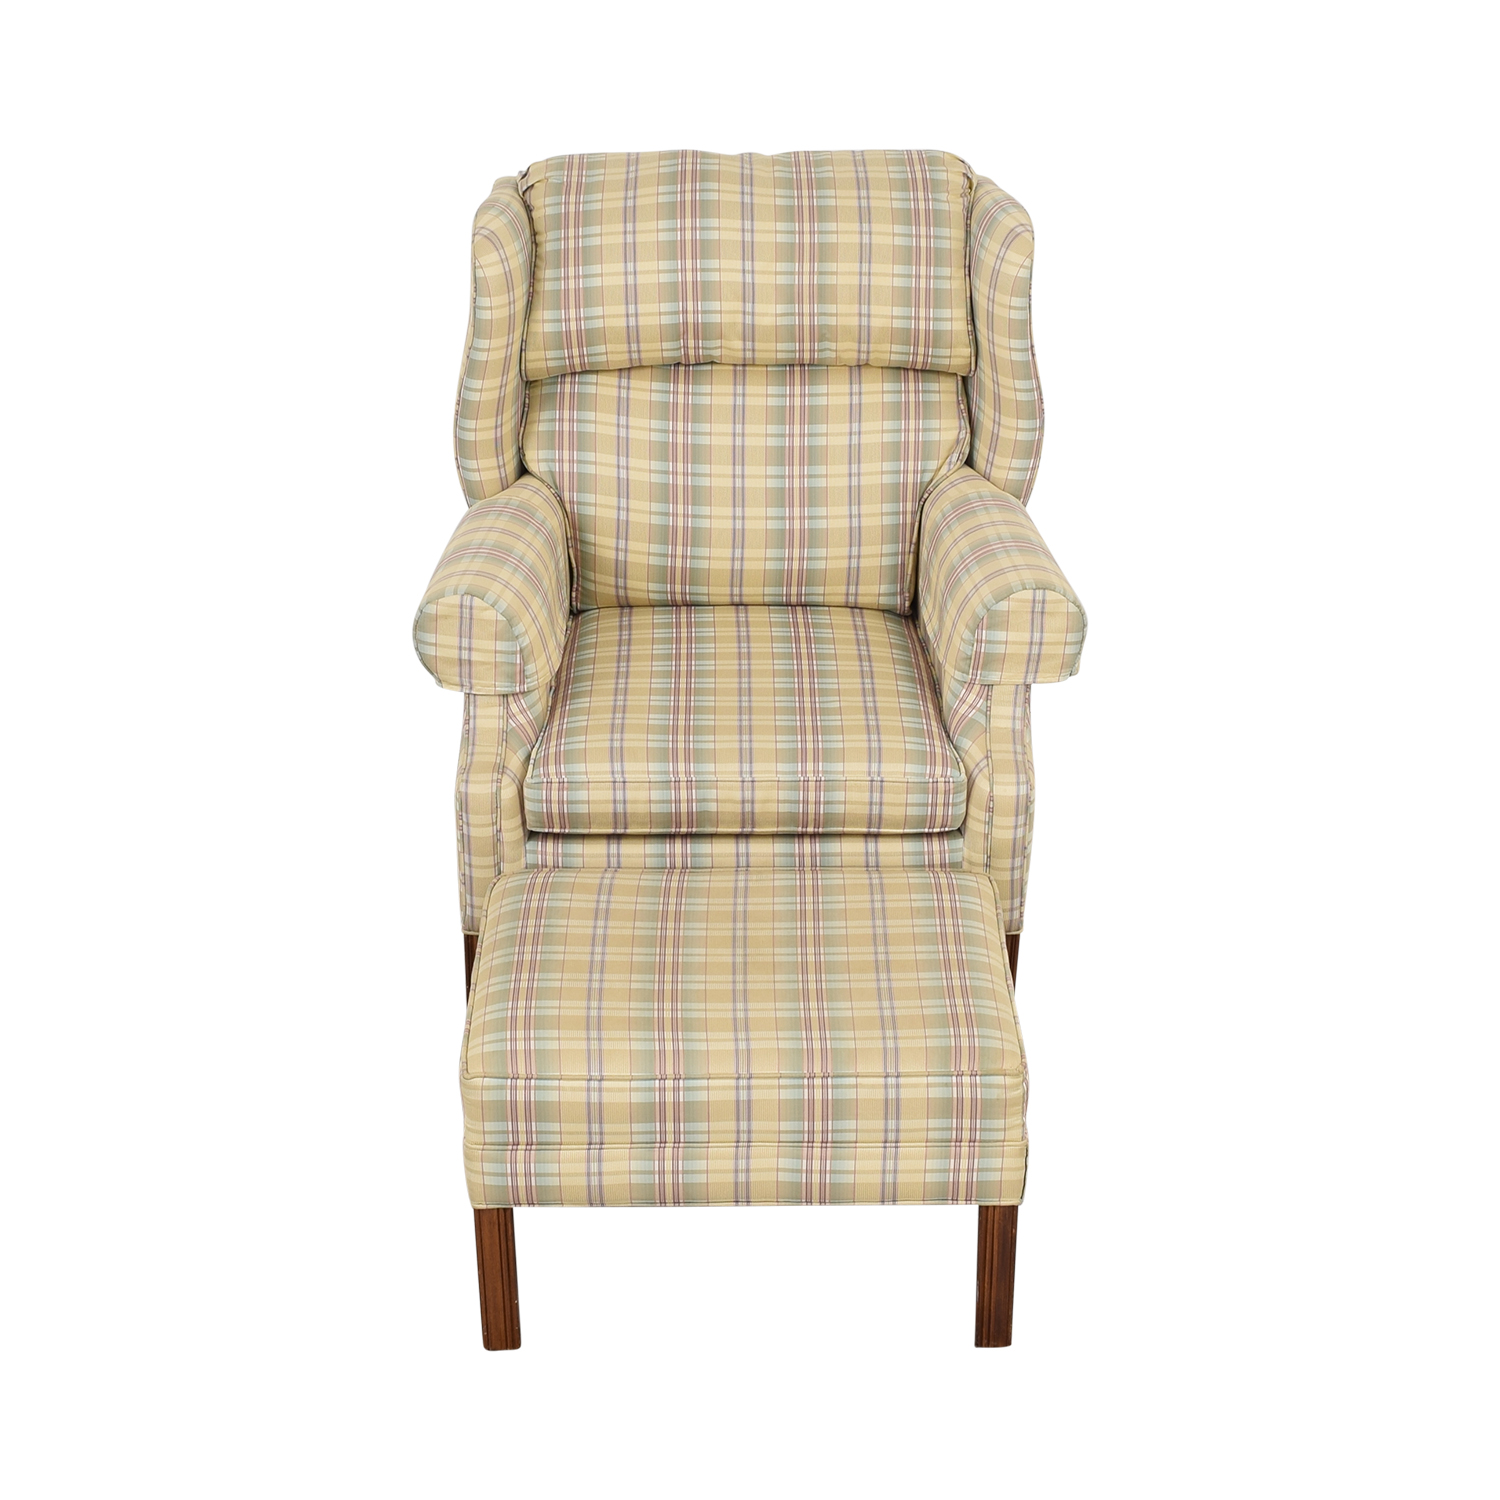 buy Ethan Allen Plaid Wingback Chair and Ottoman Ethan Allen